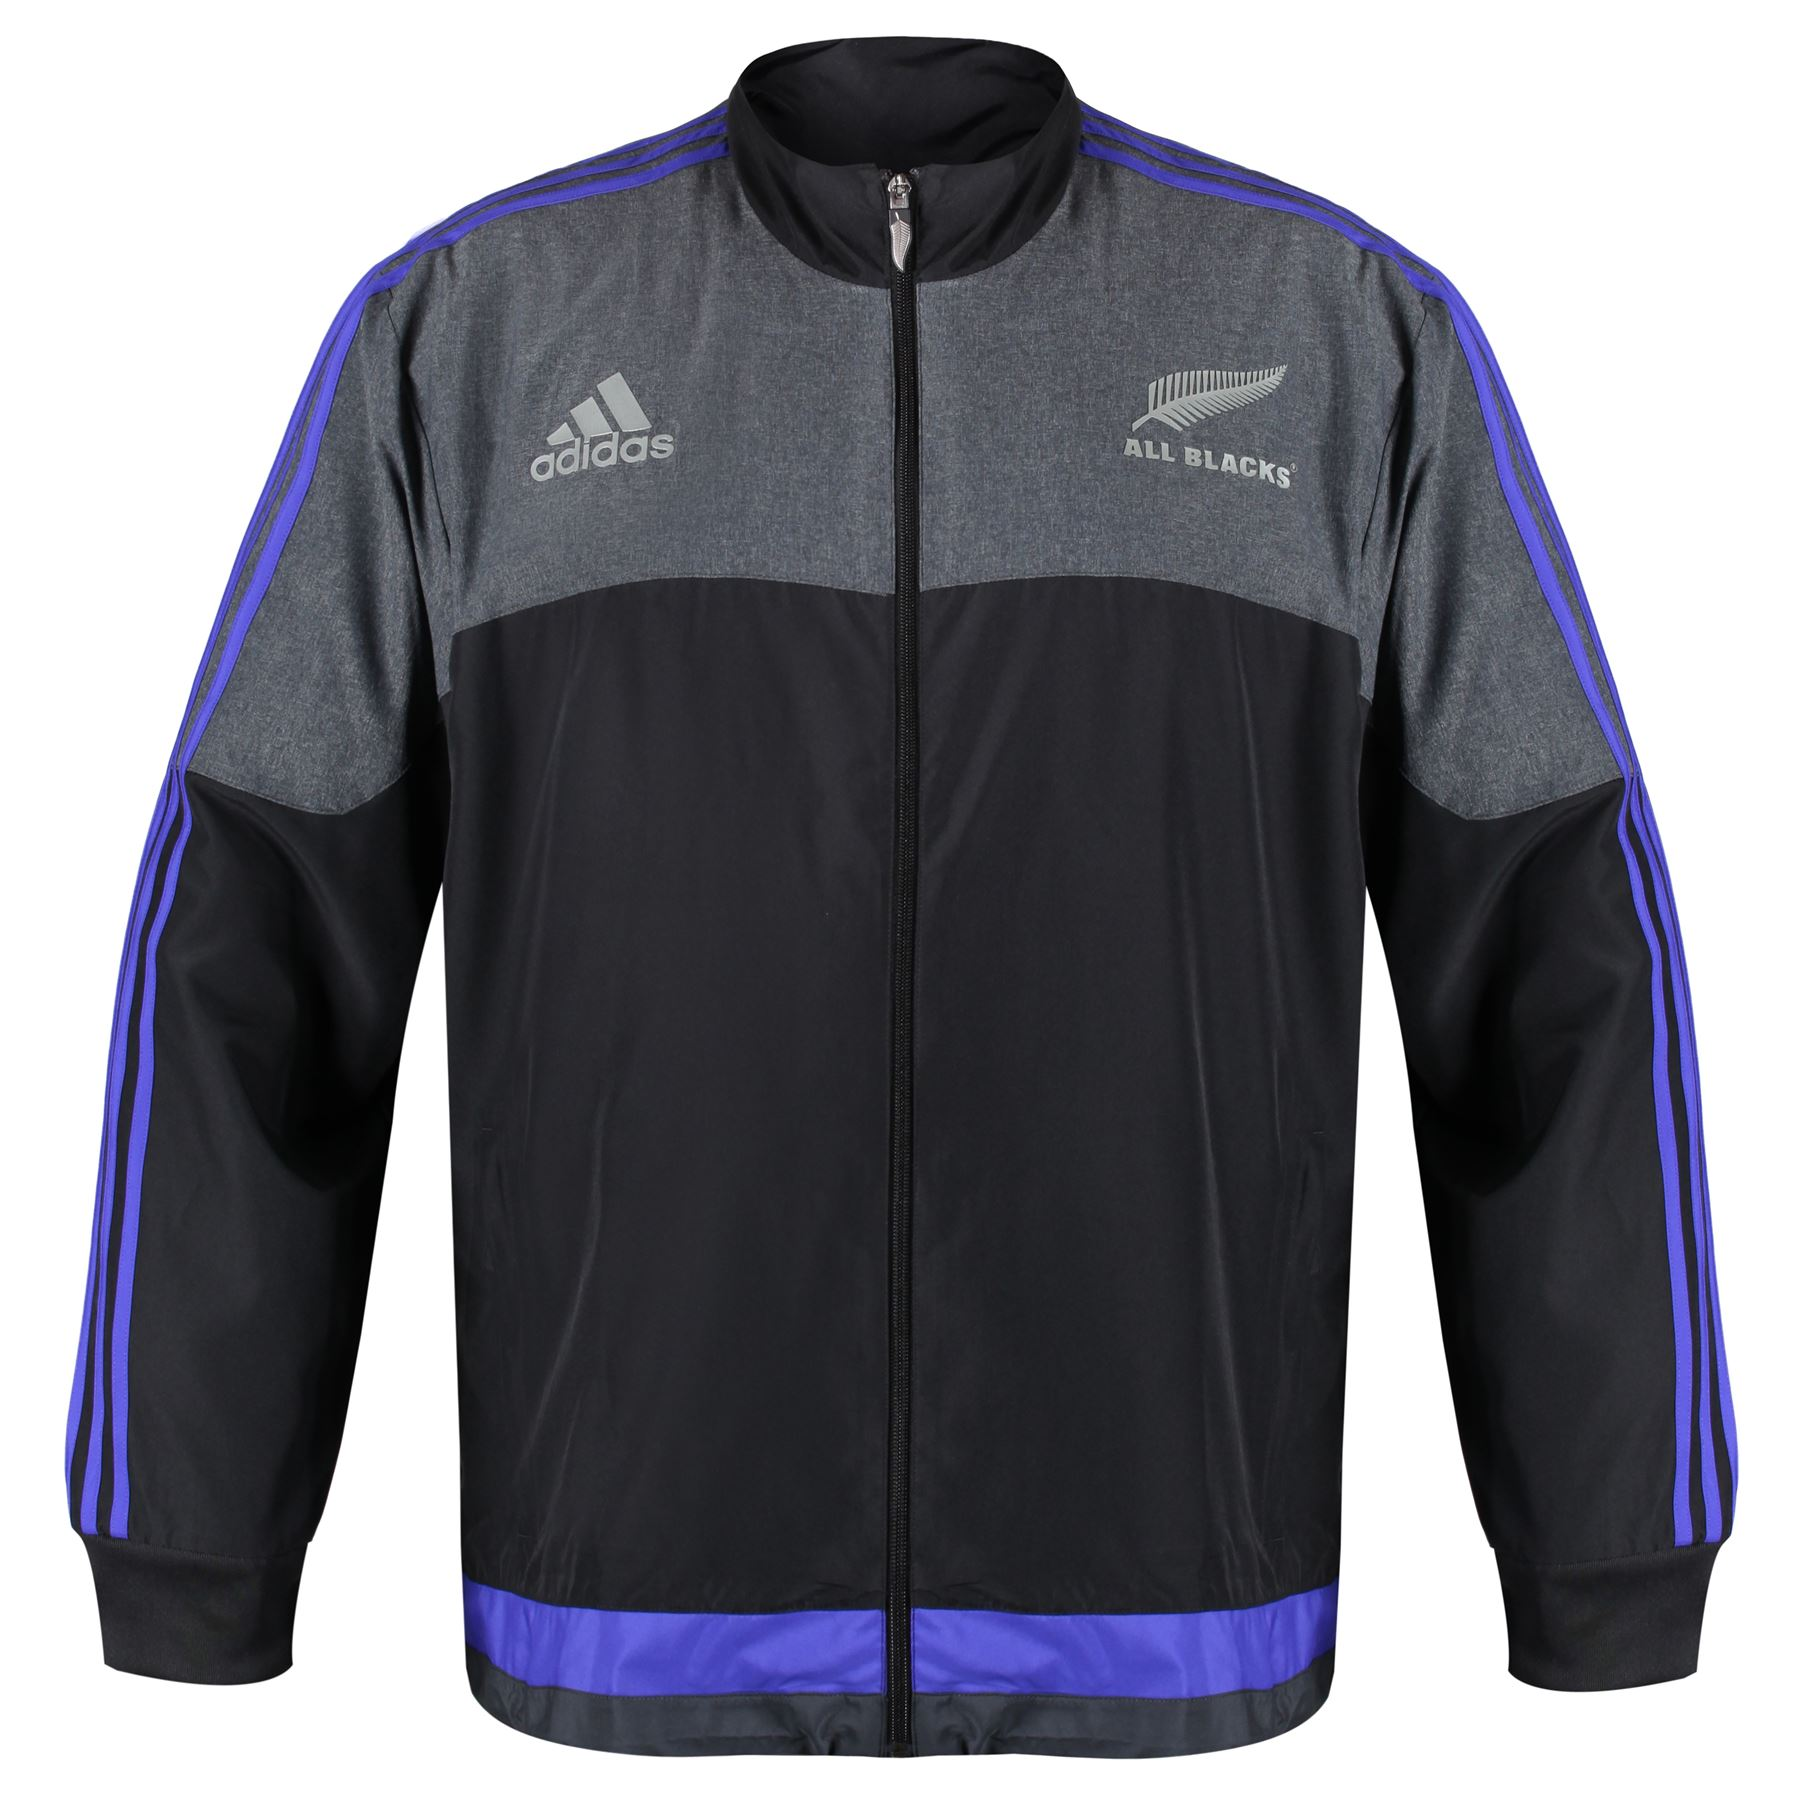 check out 4b9d8 3d814 Details about adidas NEW ZEALAND ALL BLACKS PRESENTATION JACKET BLACK 3XL  XXXL RUGBY MENS BIG